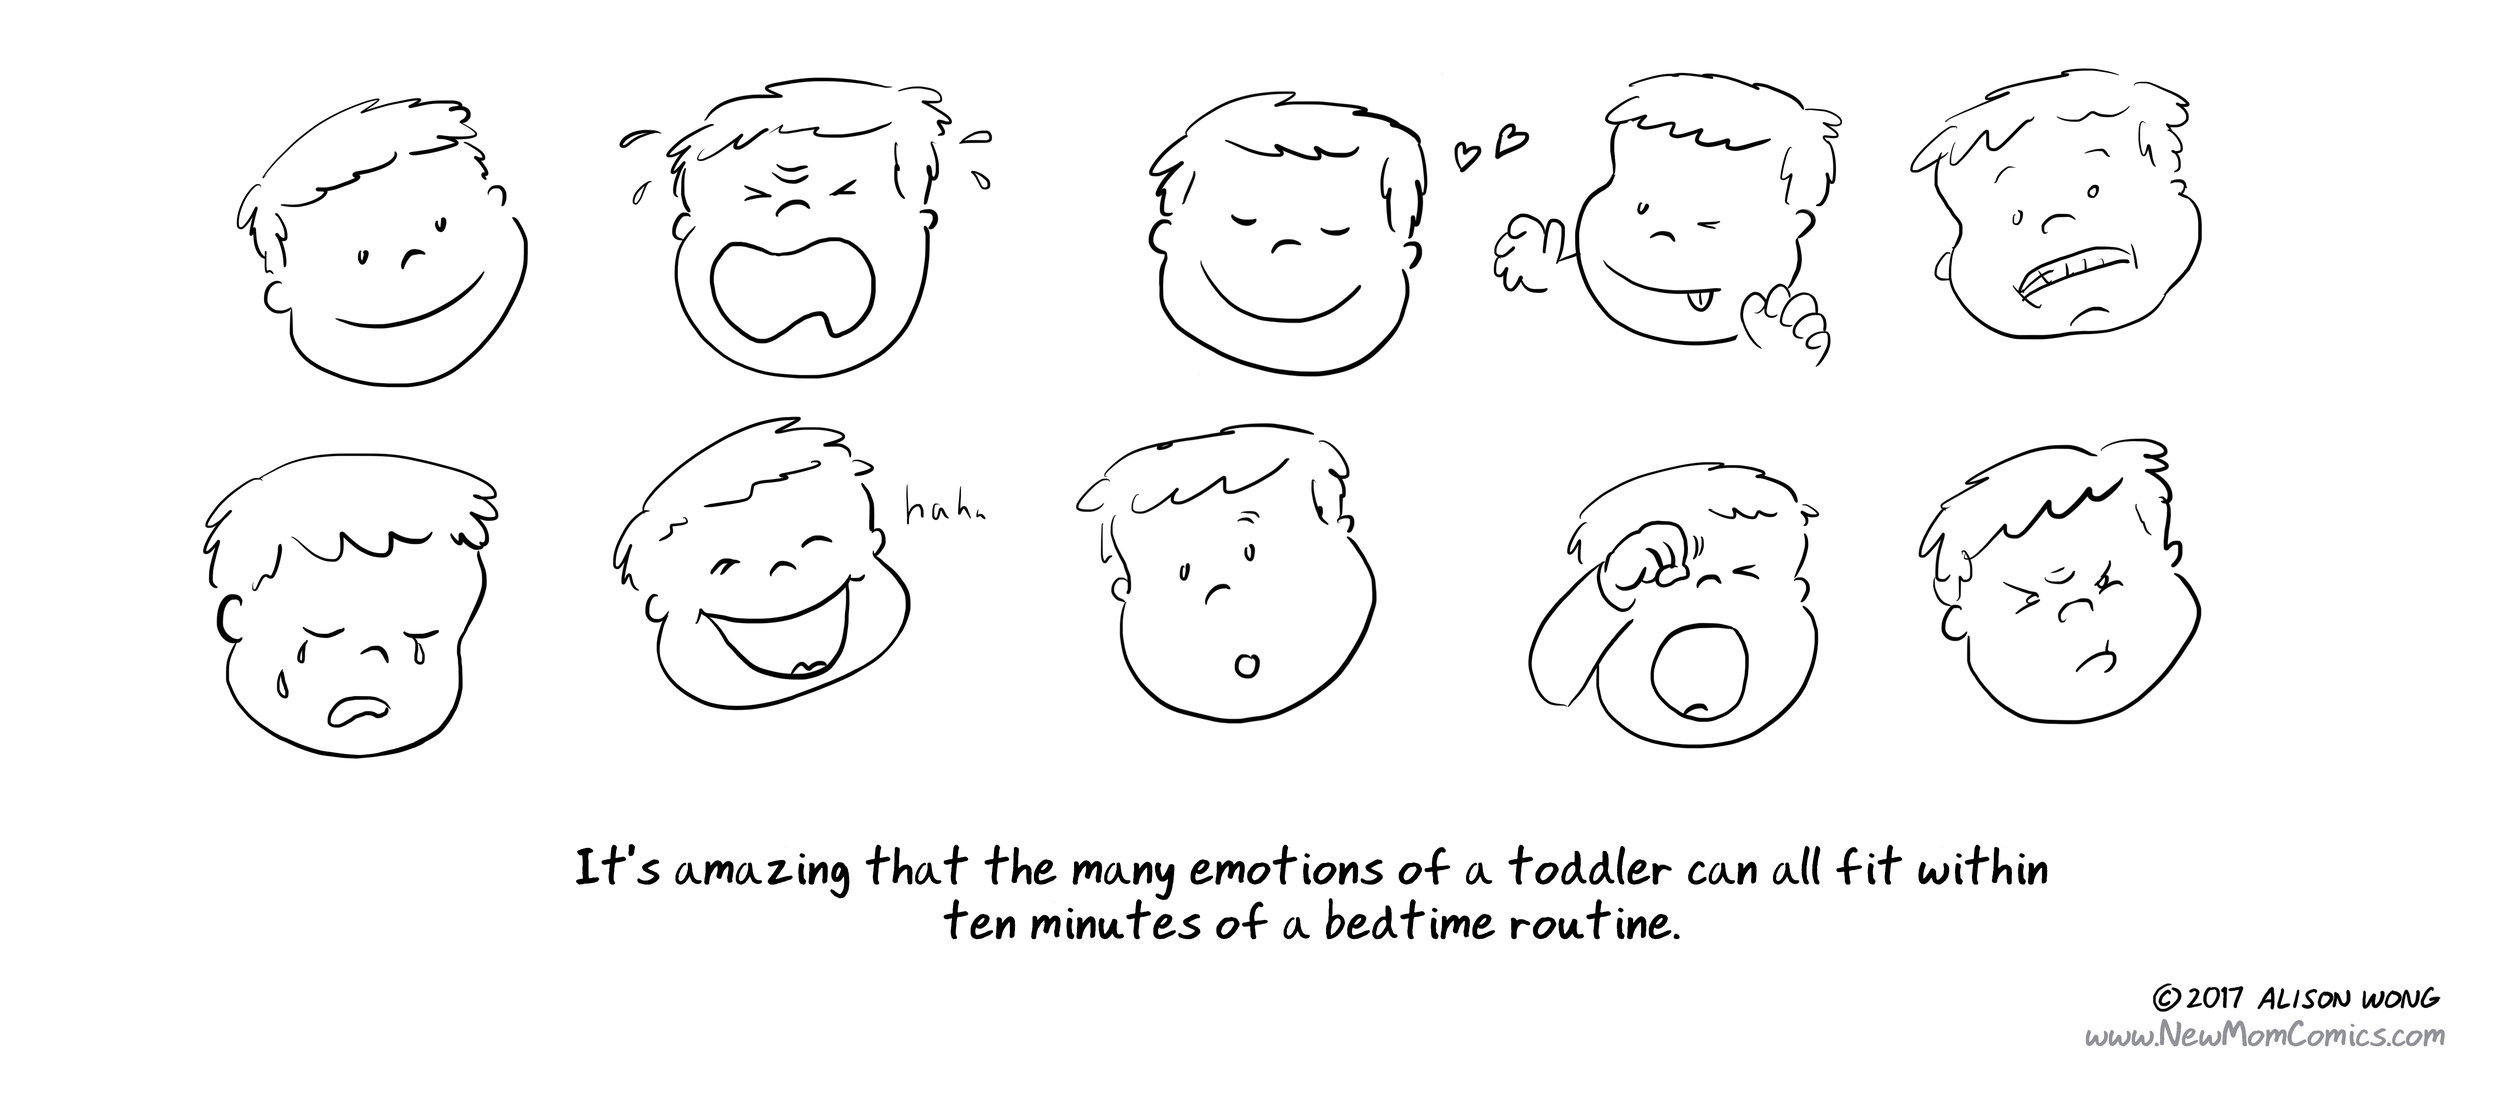 toddler_emotions.jpg